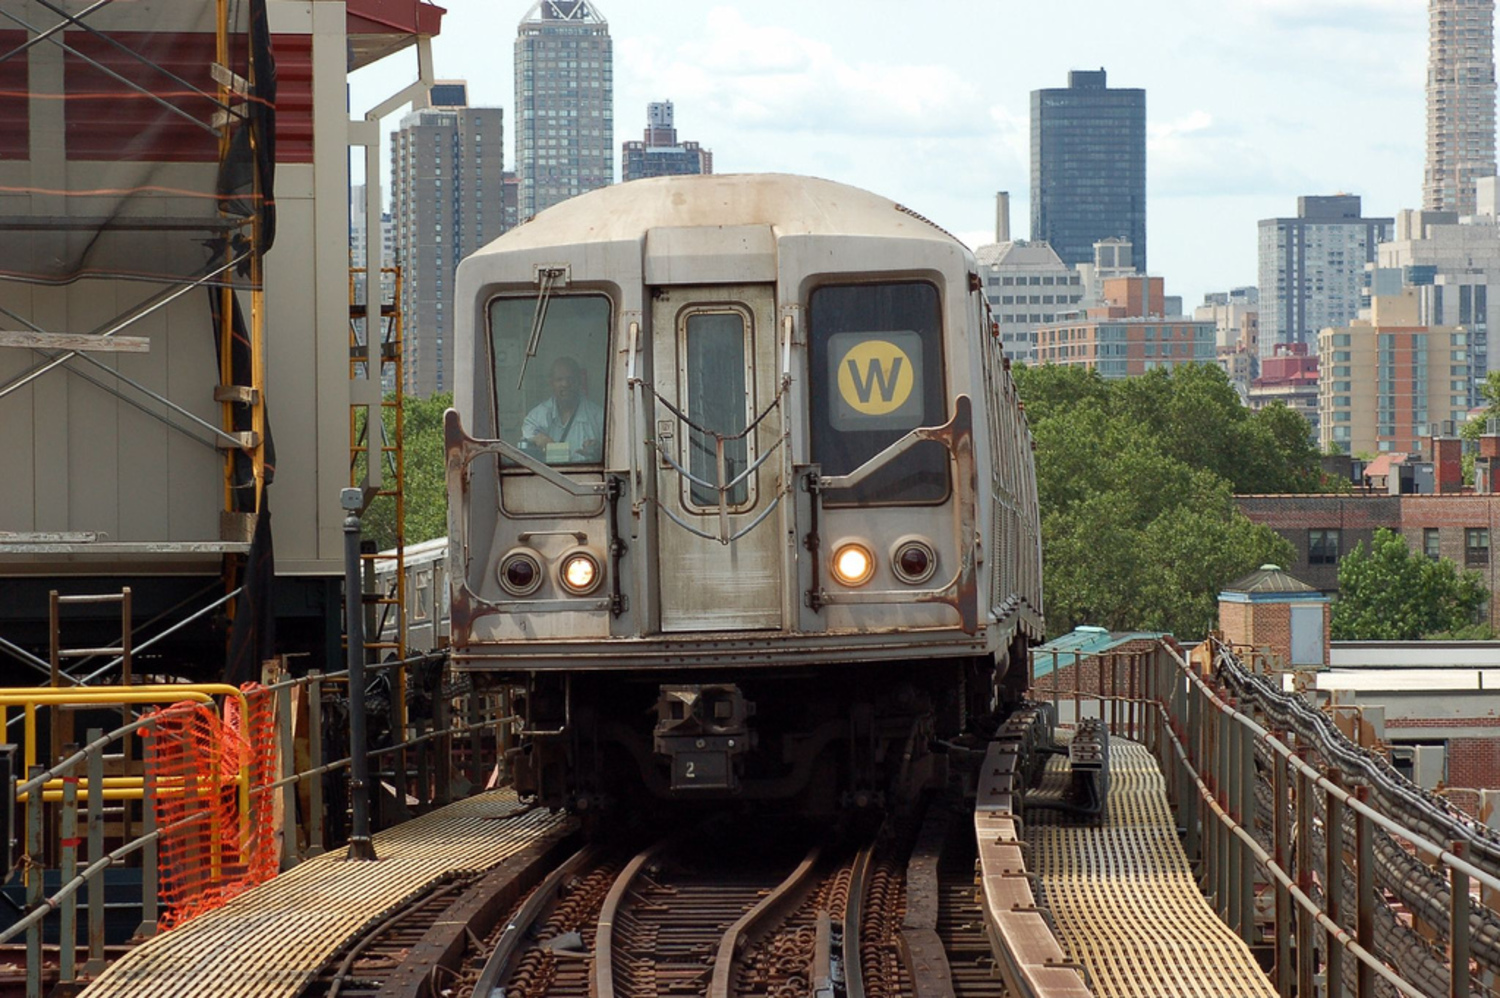 Long Island City, NY - 7/7/06 | R40 W Train at Queensboro Plaza